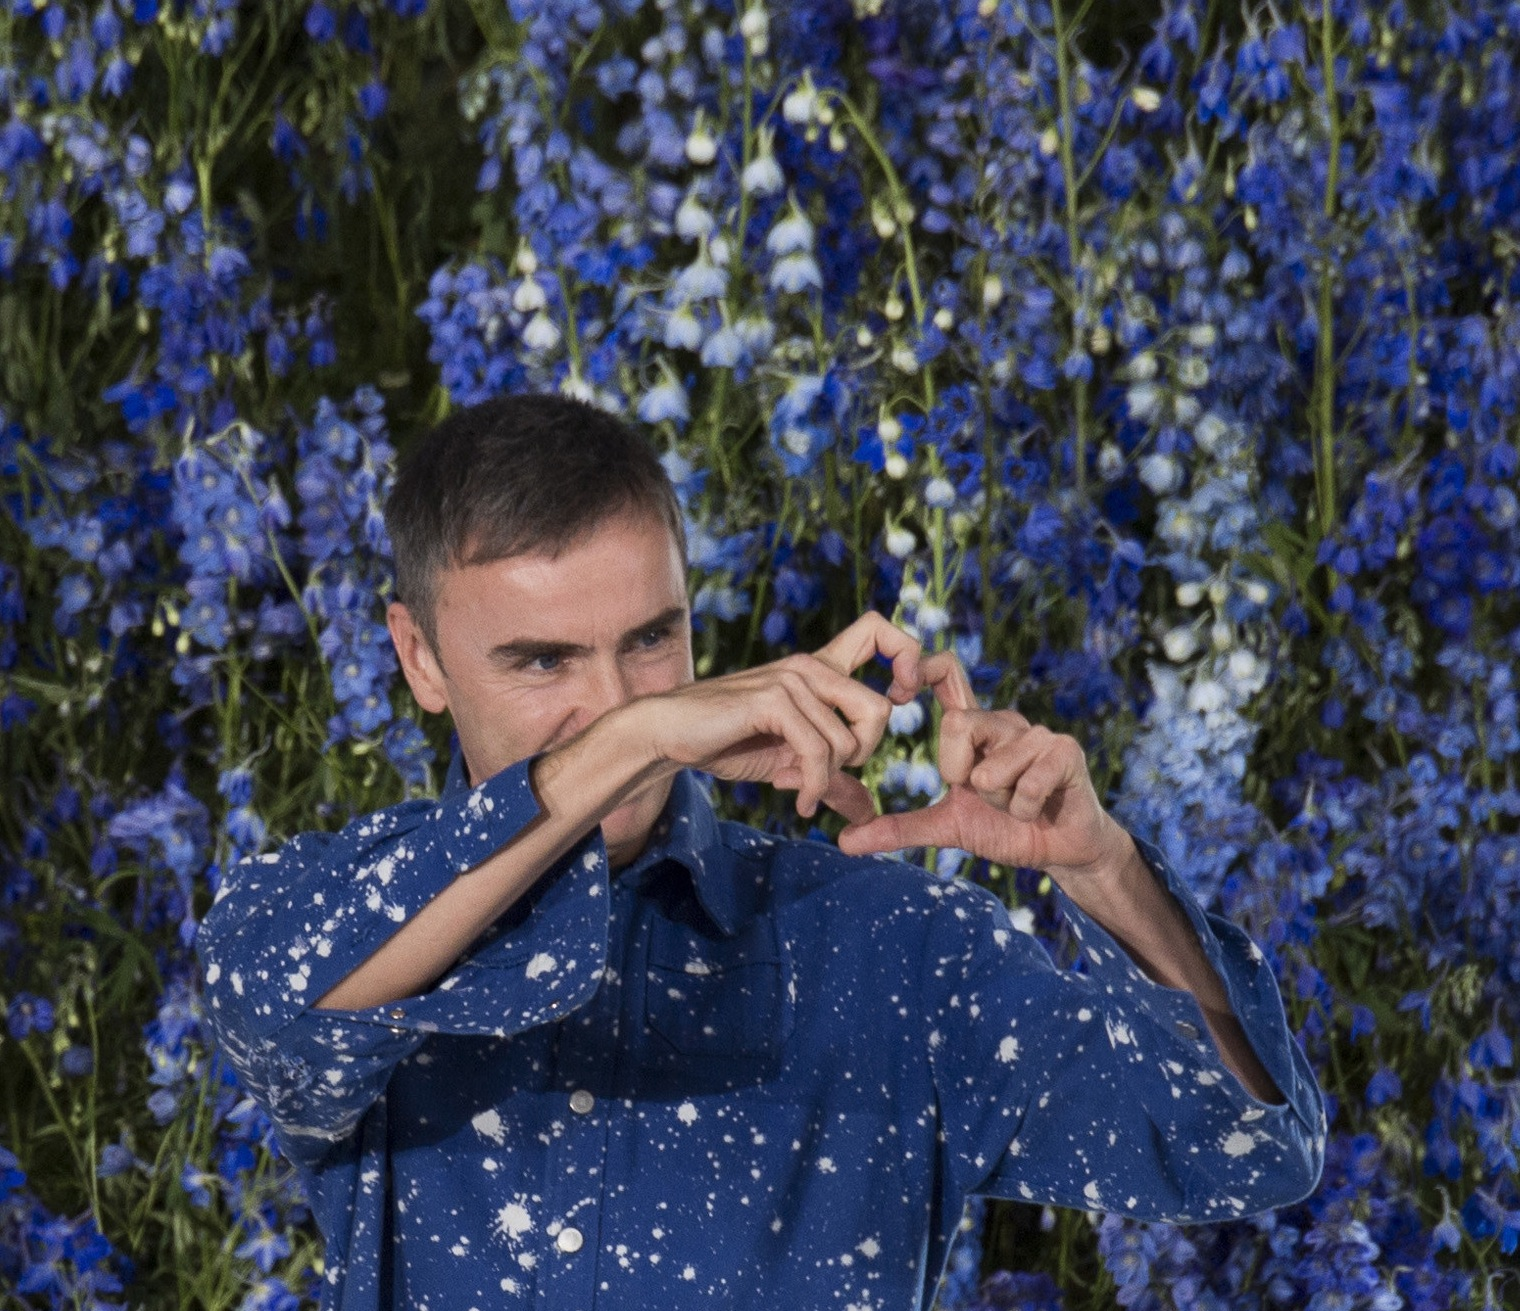 Raf Simons' final bow at Christian Dior SS'16 Show. Photo by Vogue Runway